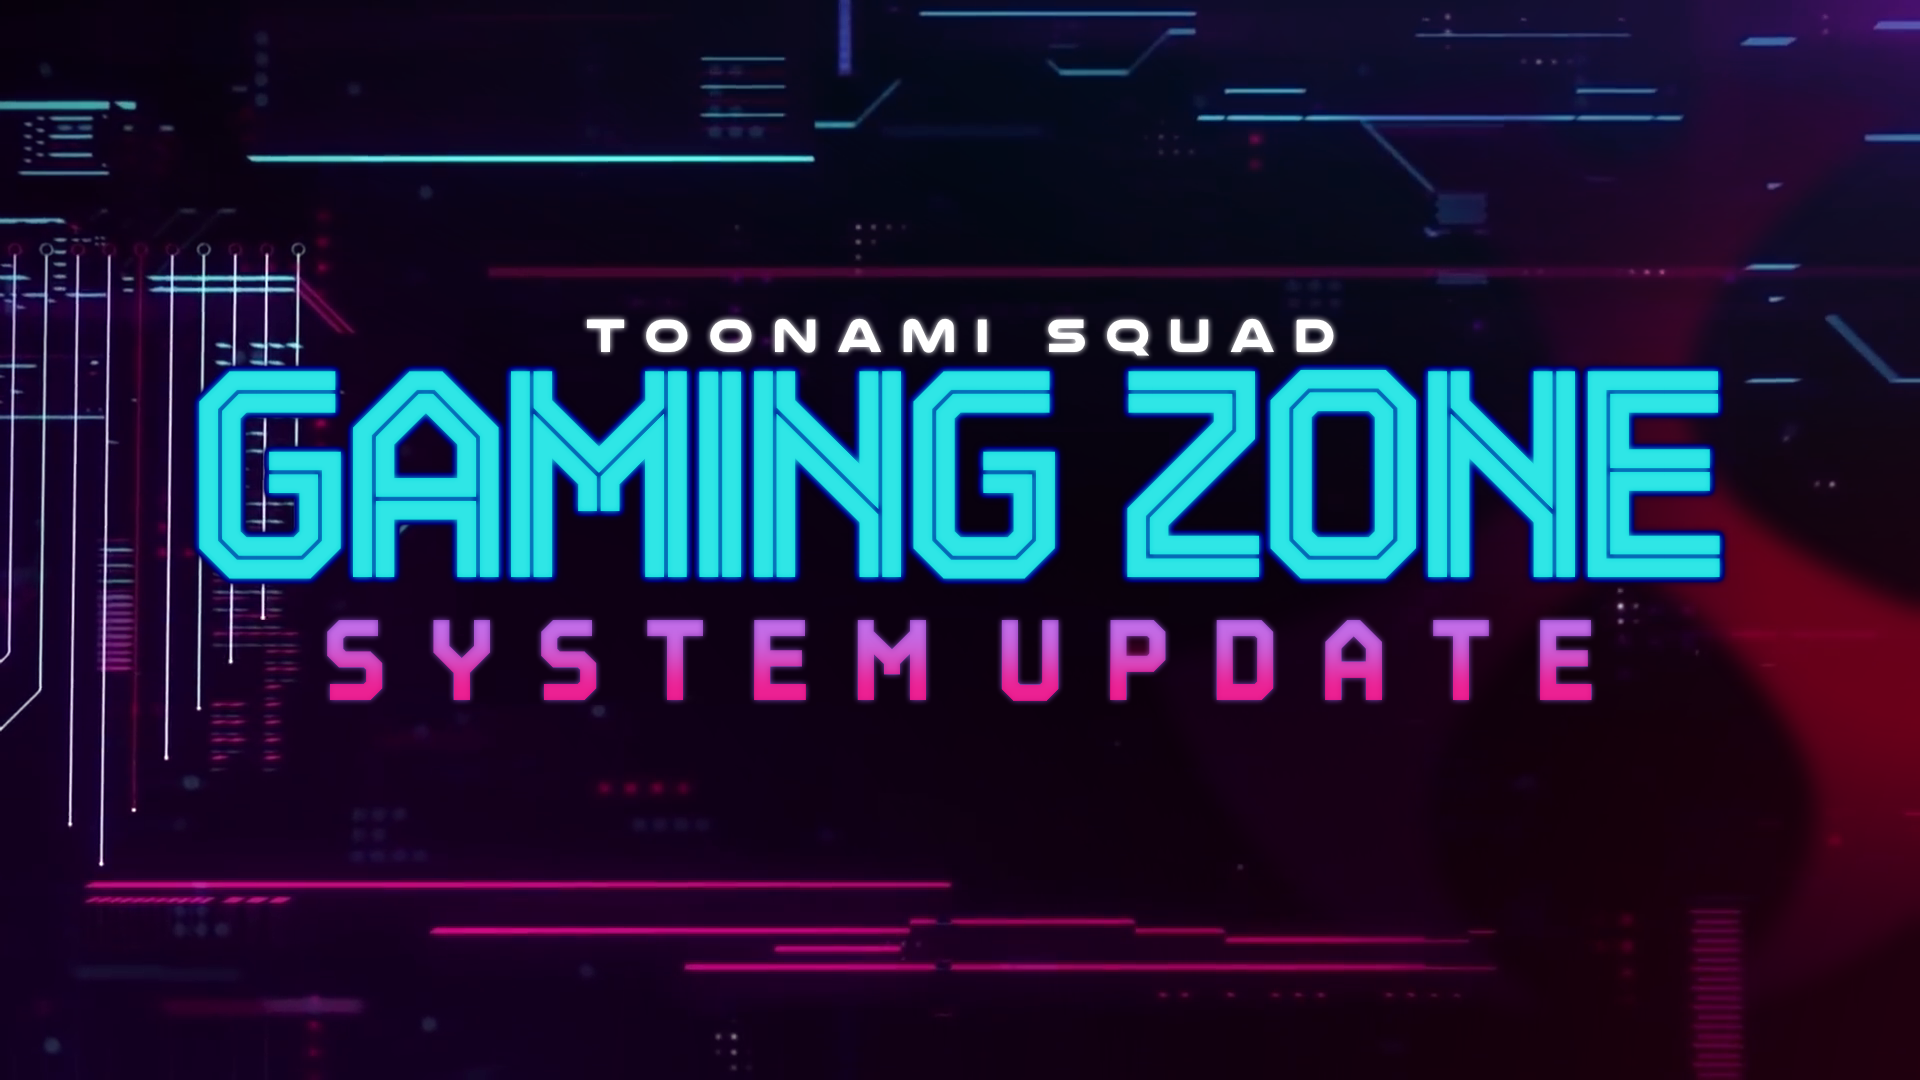 Toonami Squad Gaming Zone System Update 3/1